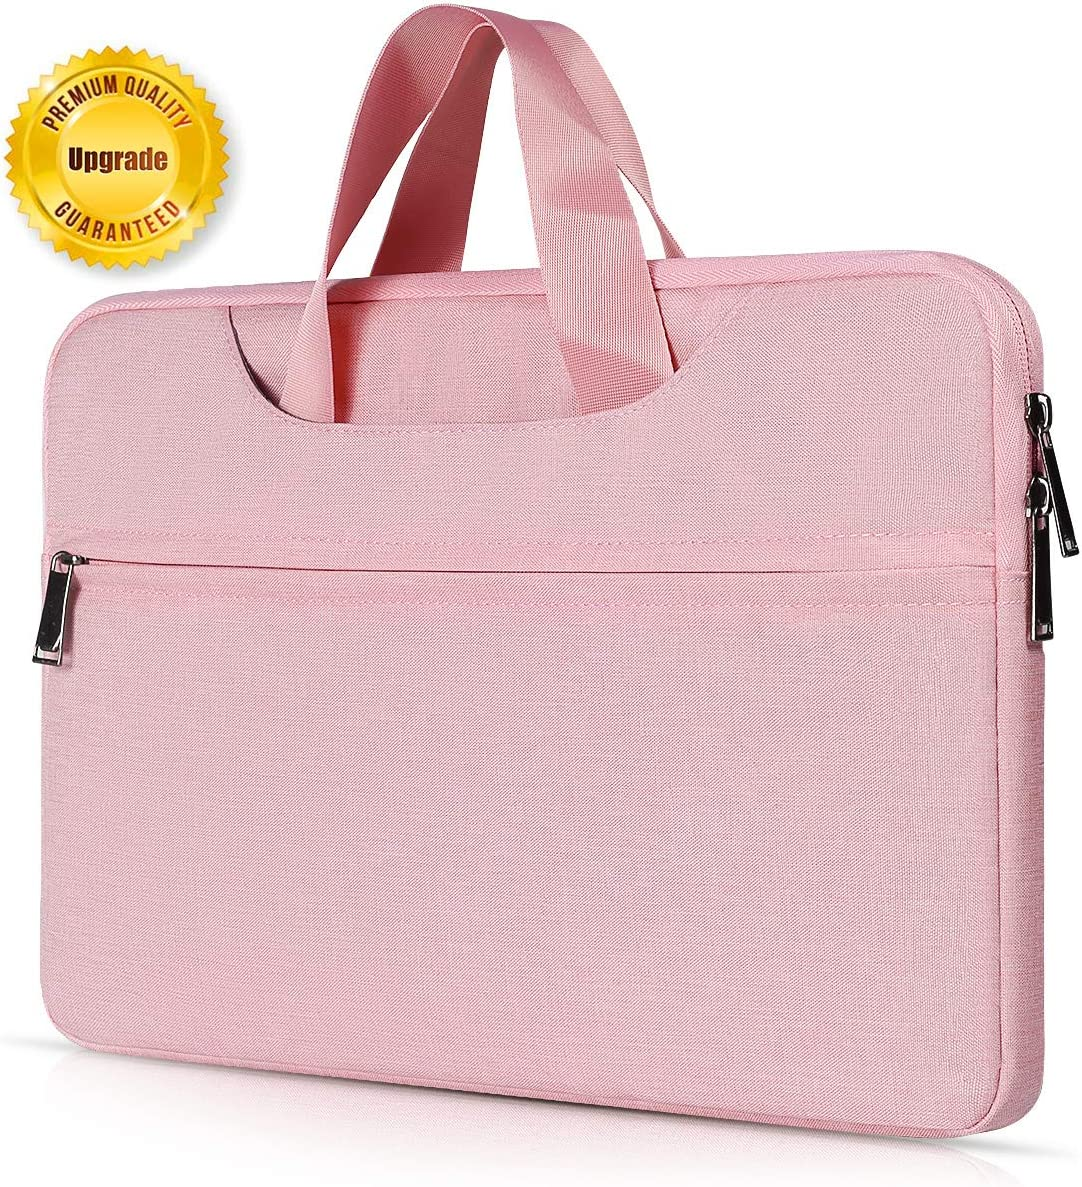 15.6 Inch Laptop Sleeve Case for Acer 15.6 Inch Flagship, Acer Chromebook 15, Lenovo Yoga 720/730 15.6, Lenovo IdeaPad, HP Pavilion, ASUS VivoBook, MSI GL62M, Water Resistant Notebook Case, Pink